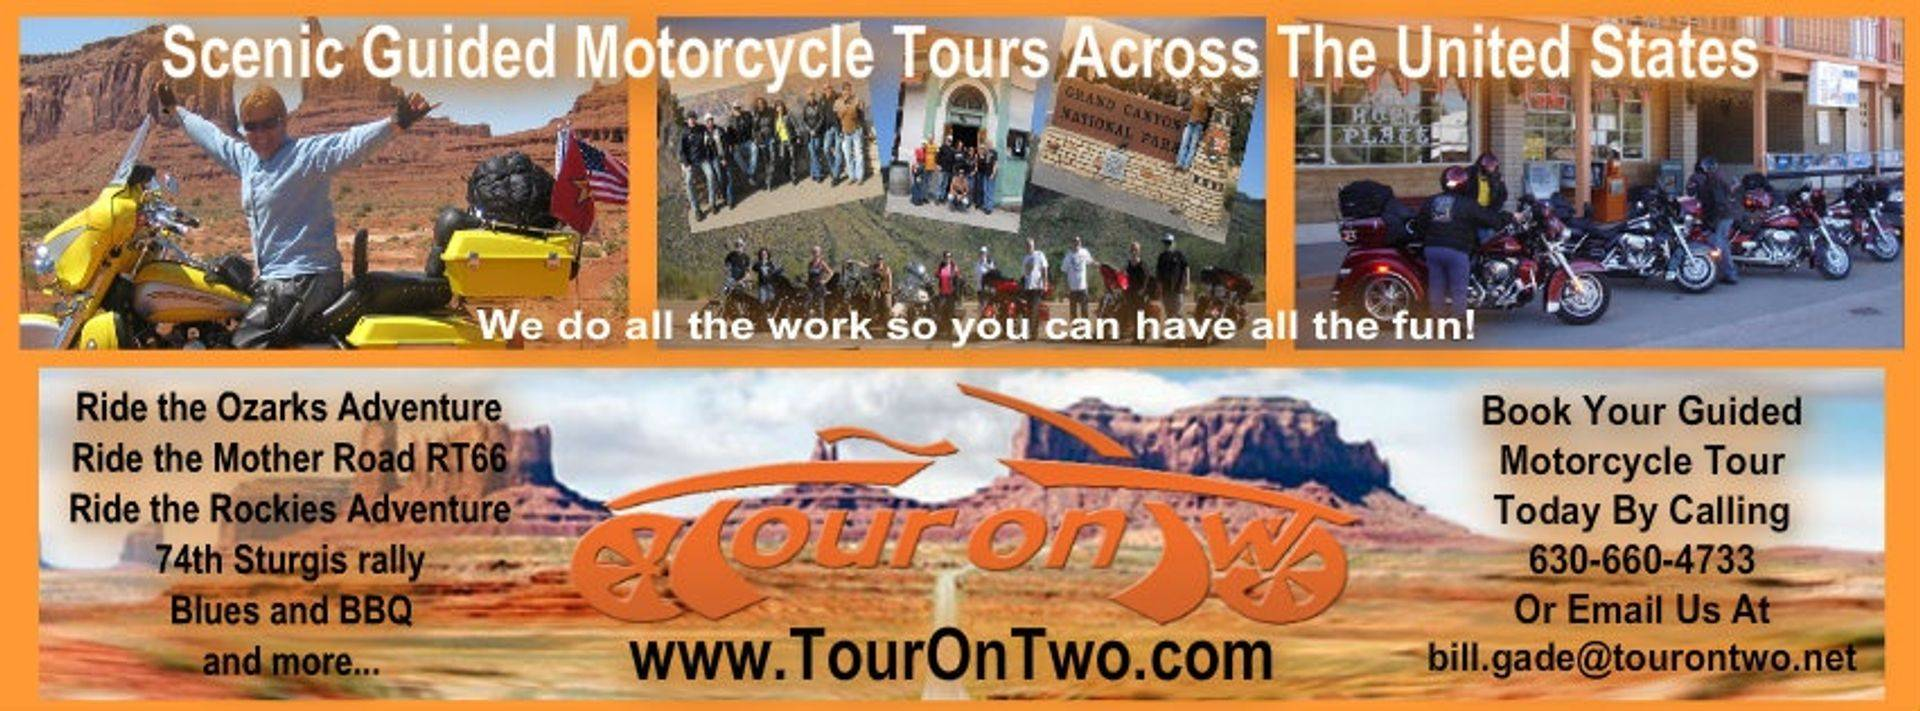 www.tourontwo.com Motorcycle Tours